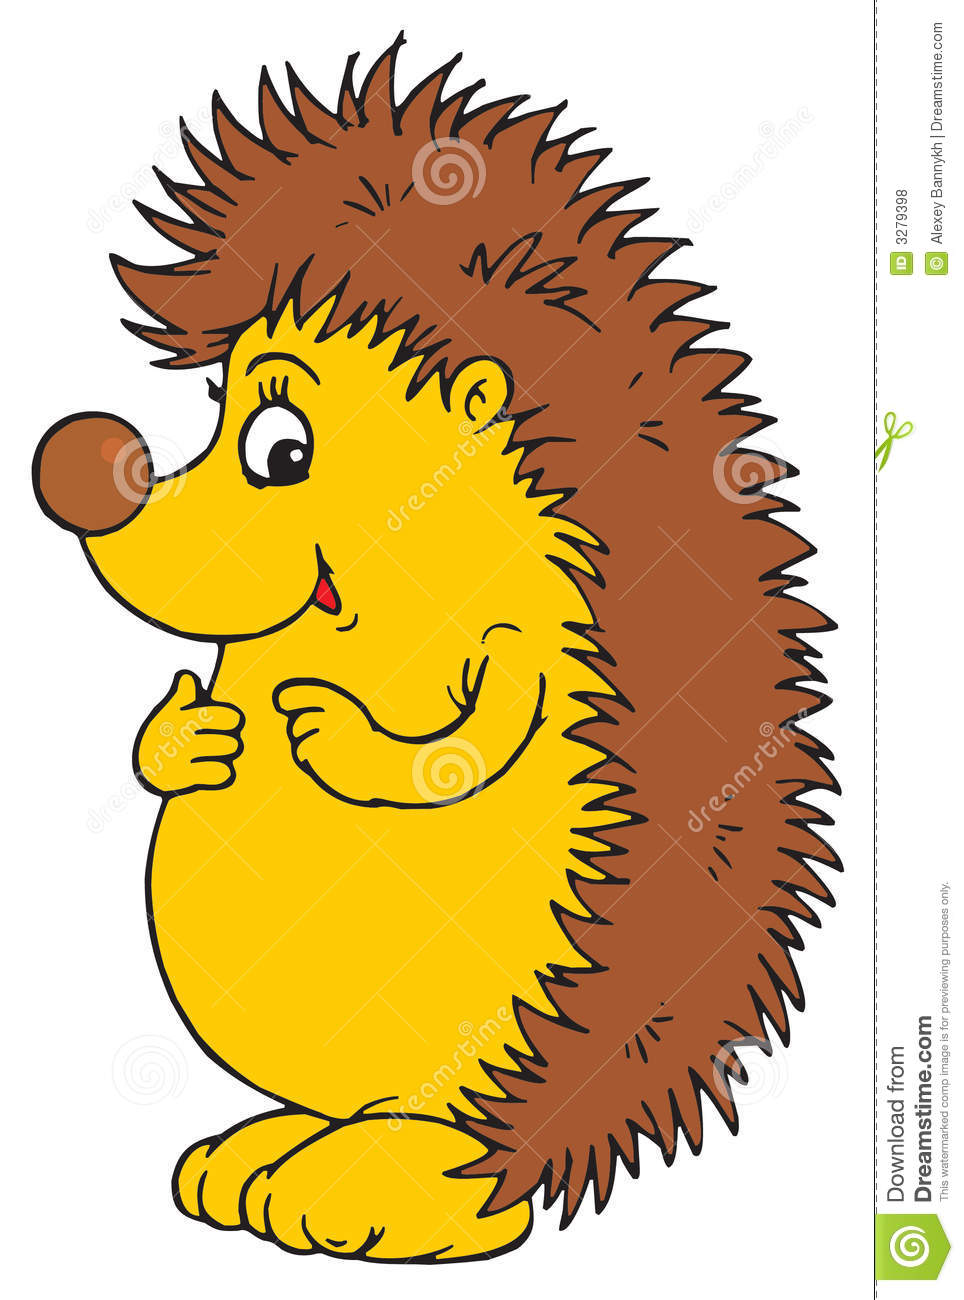 Silly Hedgehog Character Royalty Free Stock Photos   Image  3279398